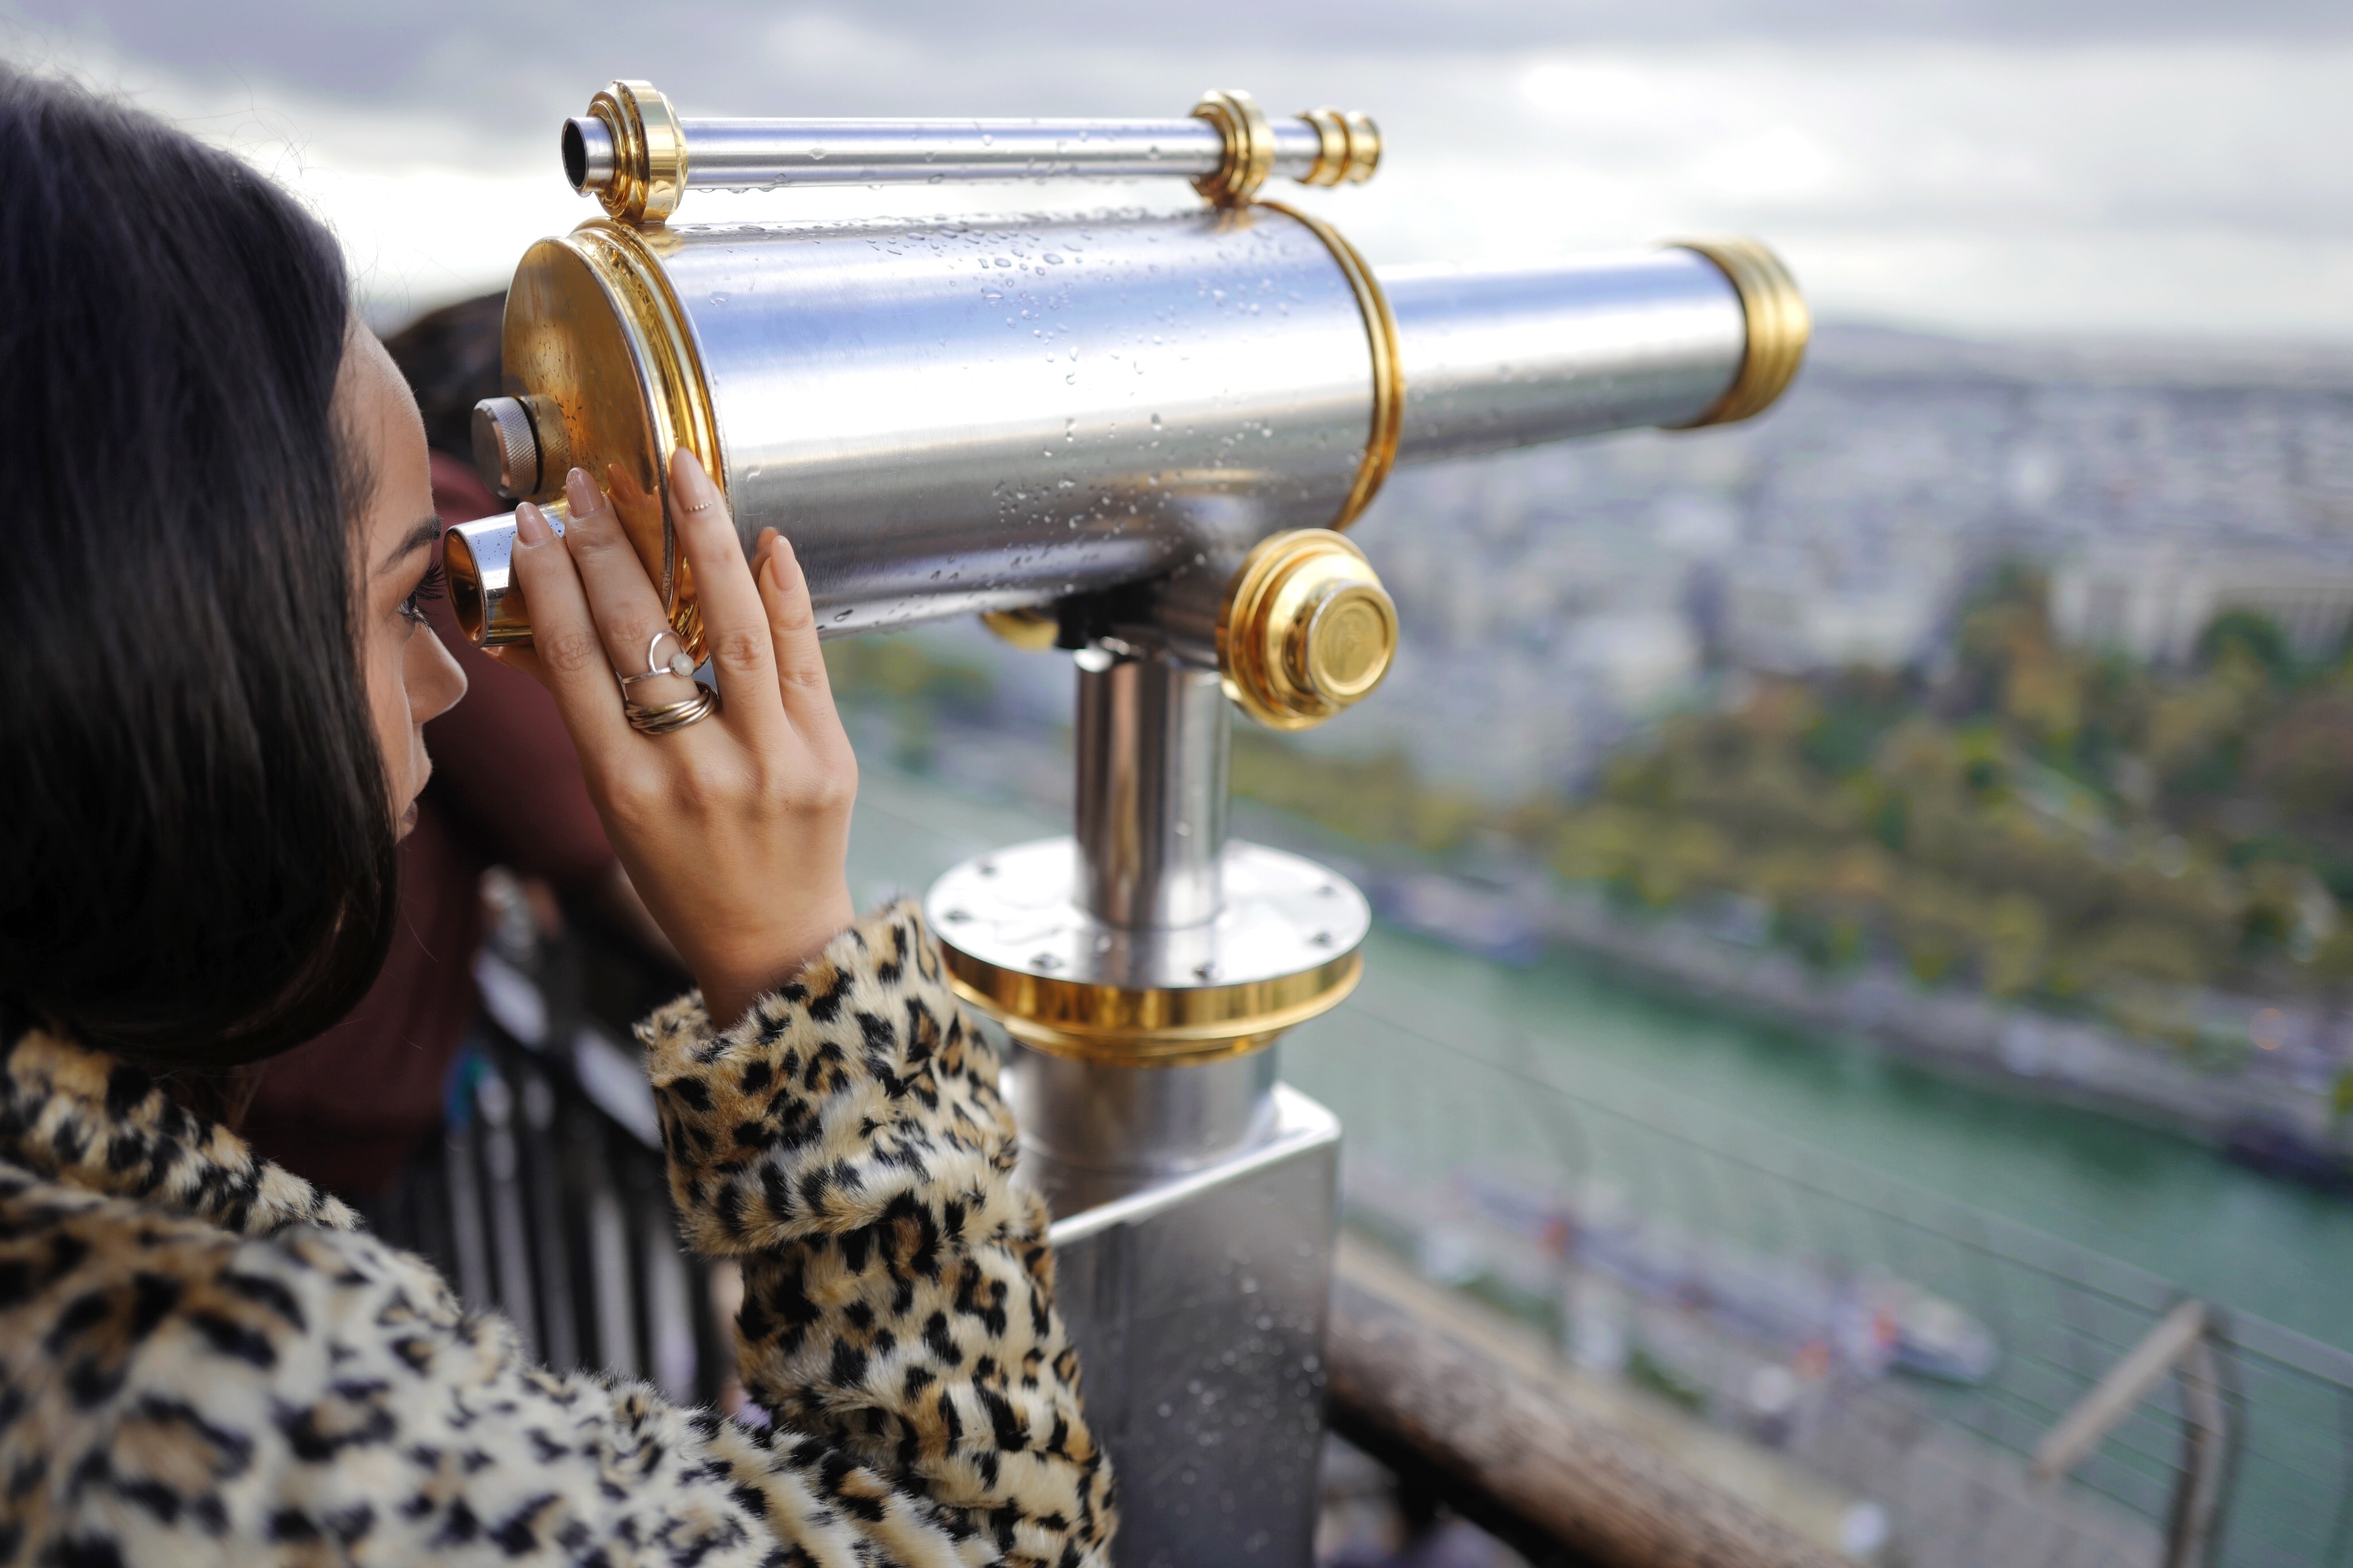 A fashionable woman looking over a river through a viewfinder telescope